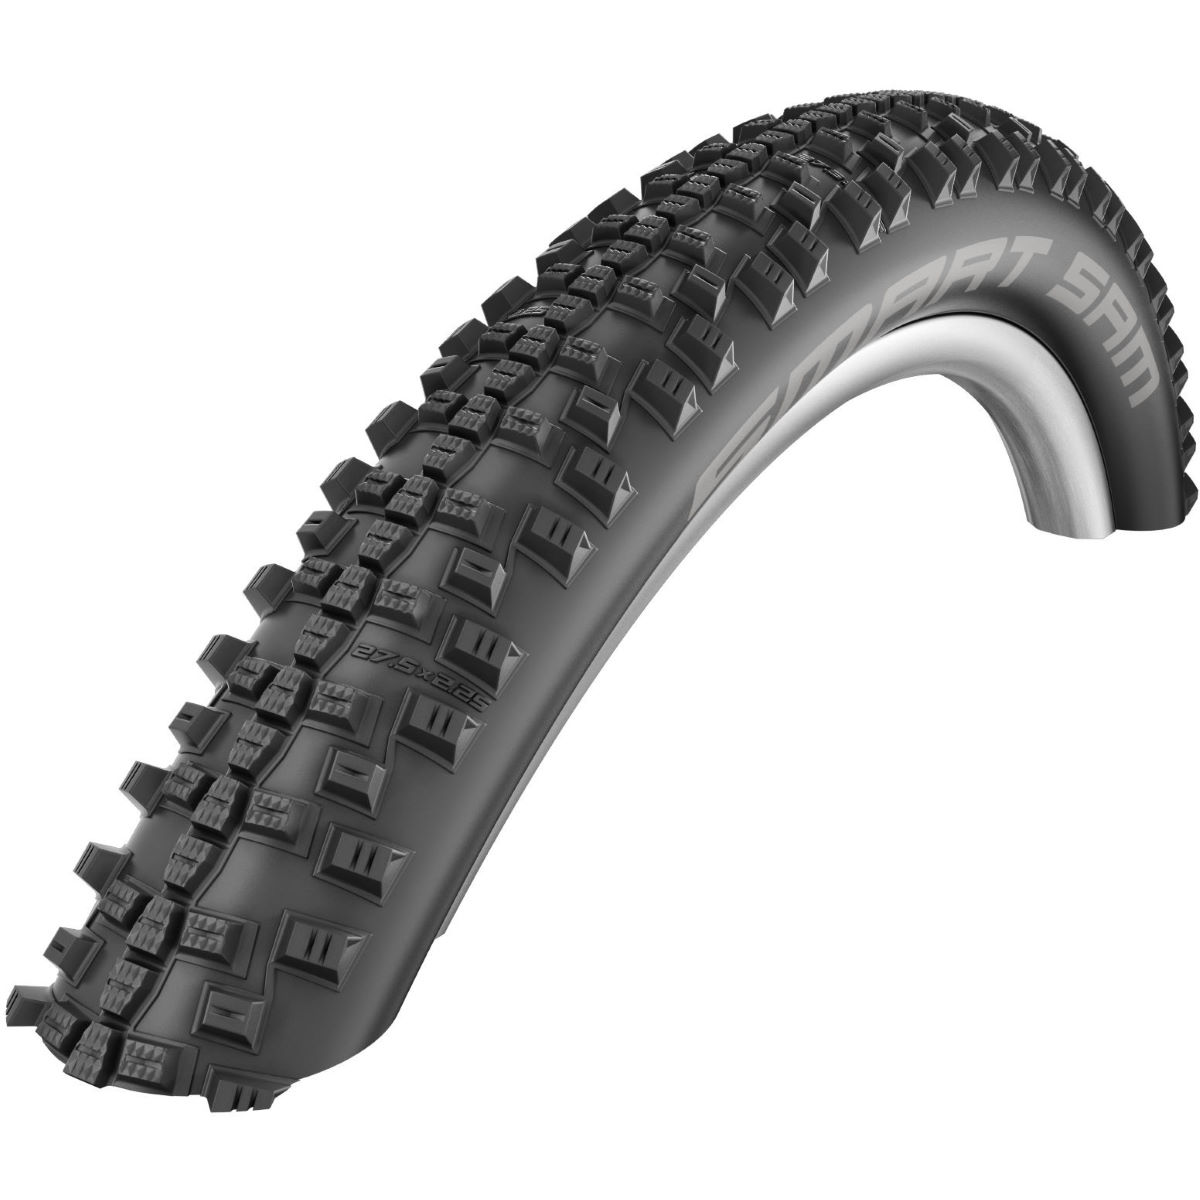 Pneu VTT Schwalbe Smart Sam Performance - 40C 700c Black / Reflex Pneus VTT